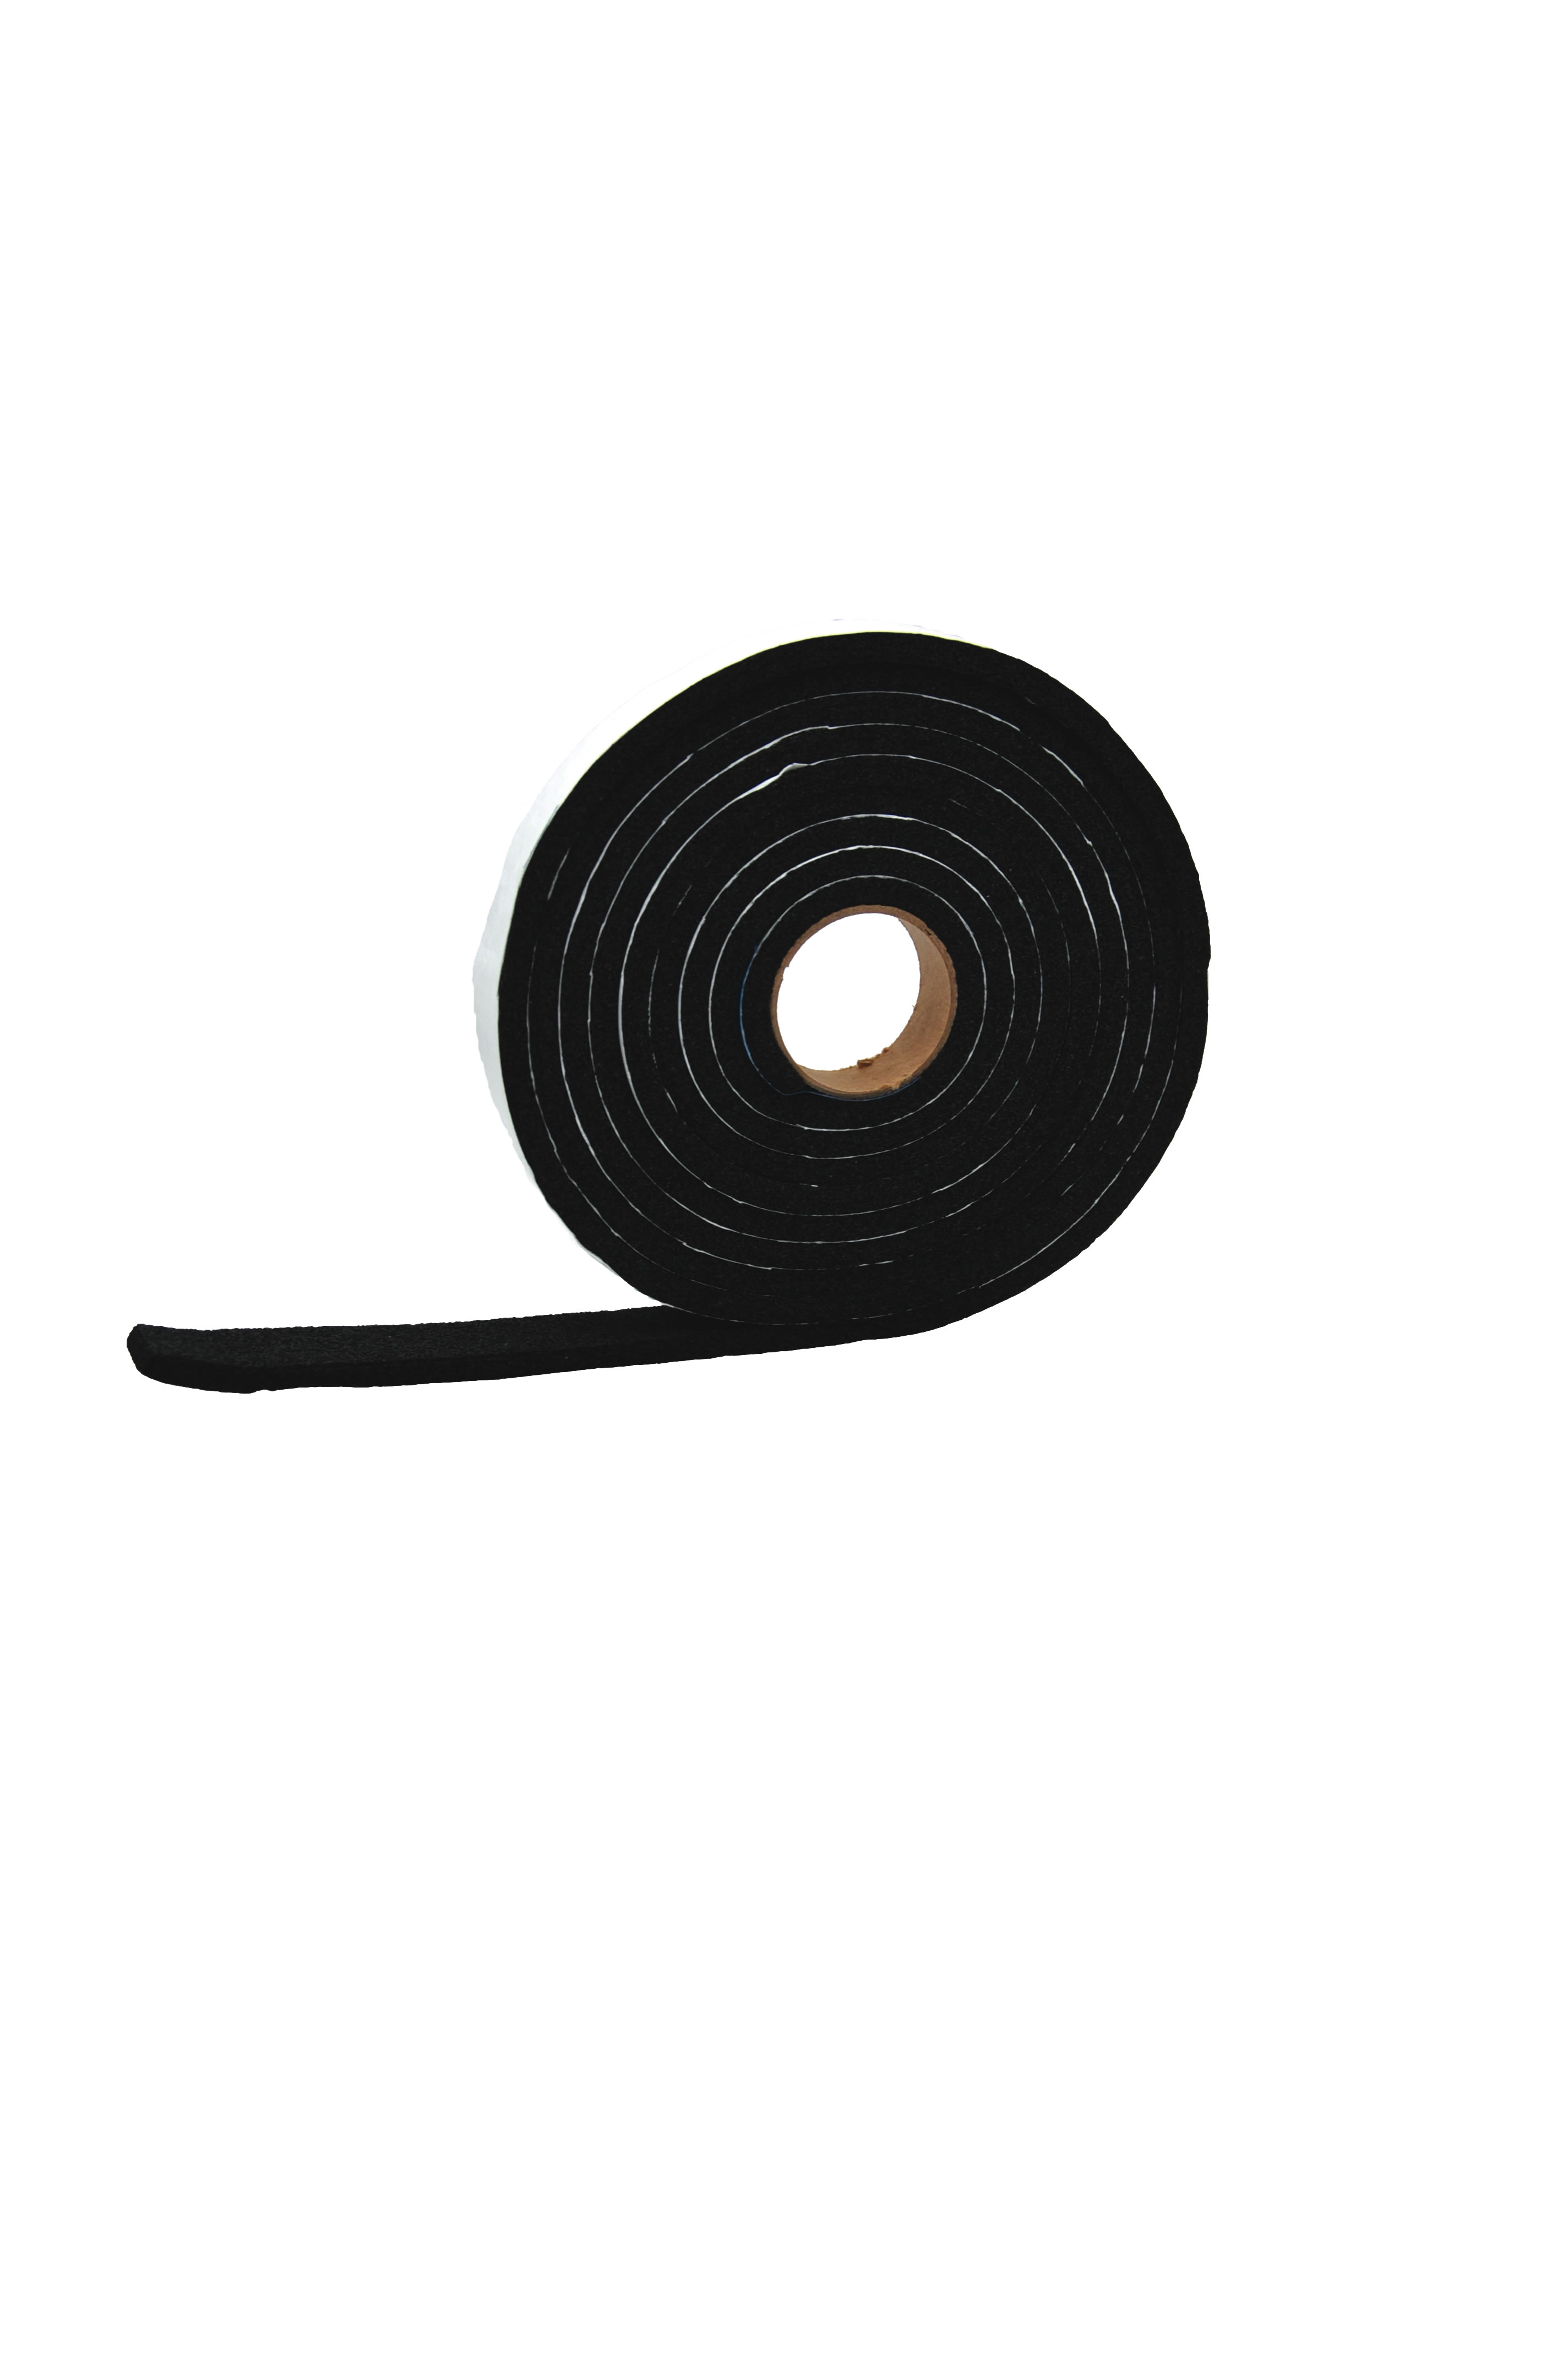 018-3163410 AP Products Multi Purpose Weather Stripping Roll